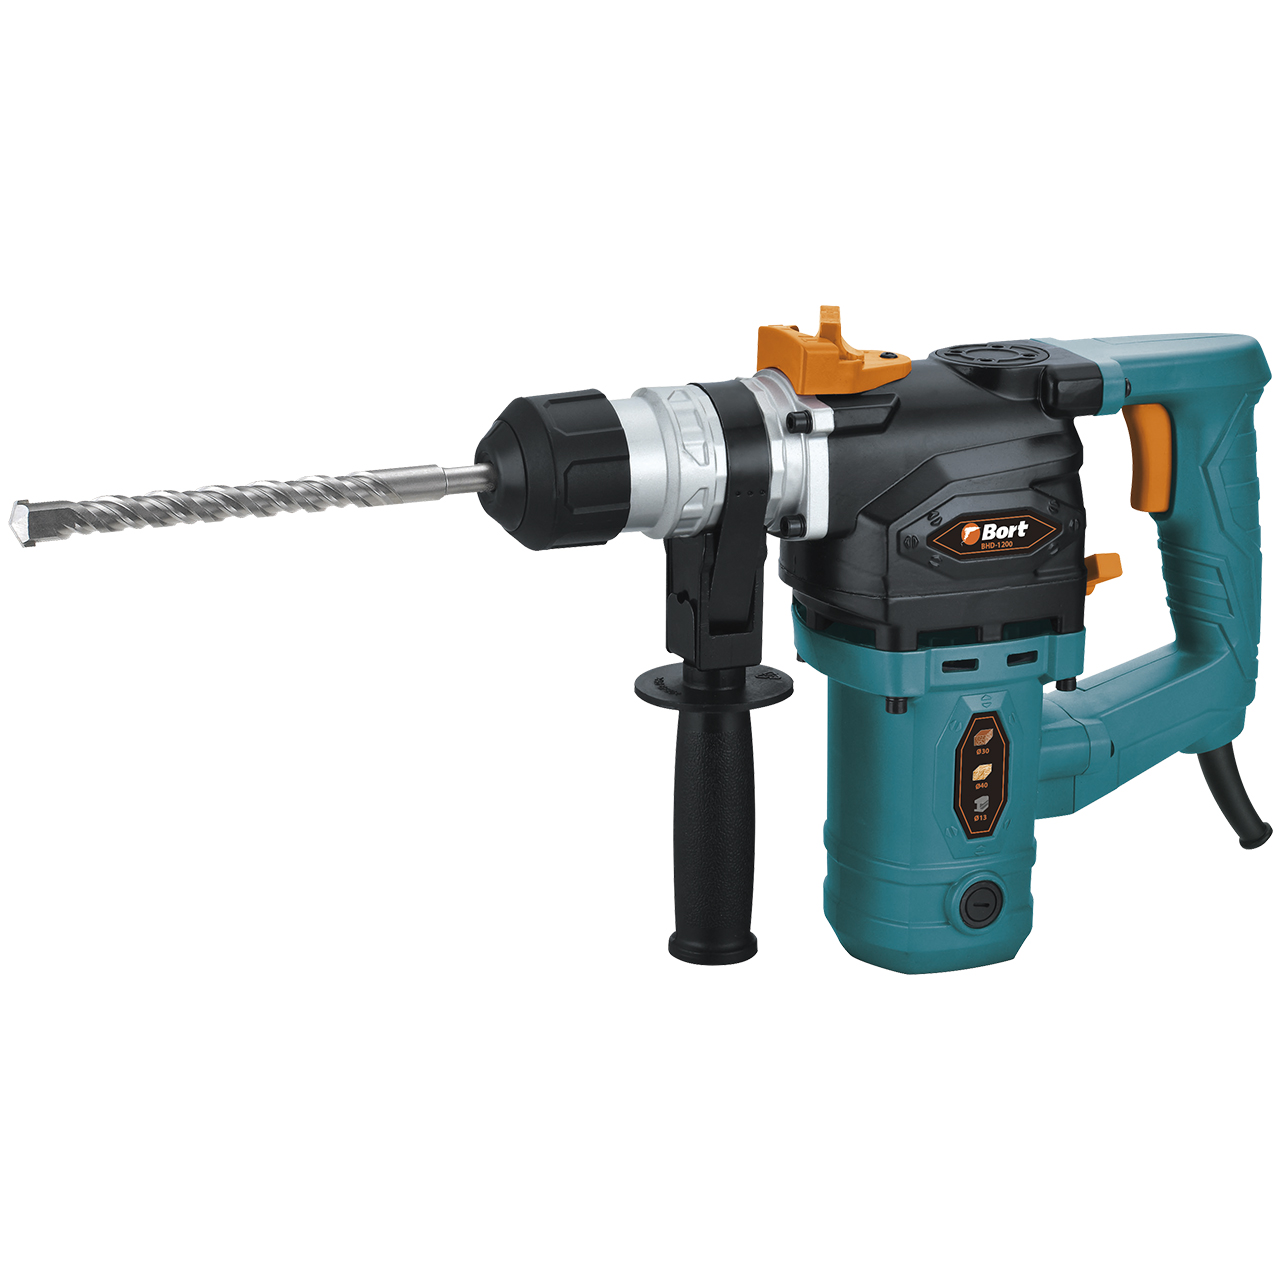 Hammer Drill electric Bort BHD-1200 (Power 1100 W, energy impact 5 J, SDS + Chuck, case)